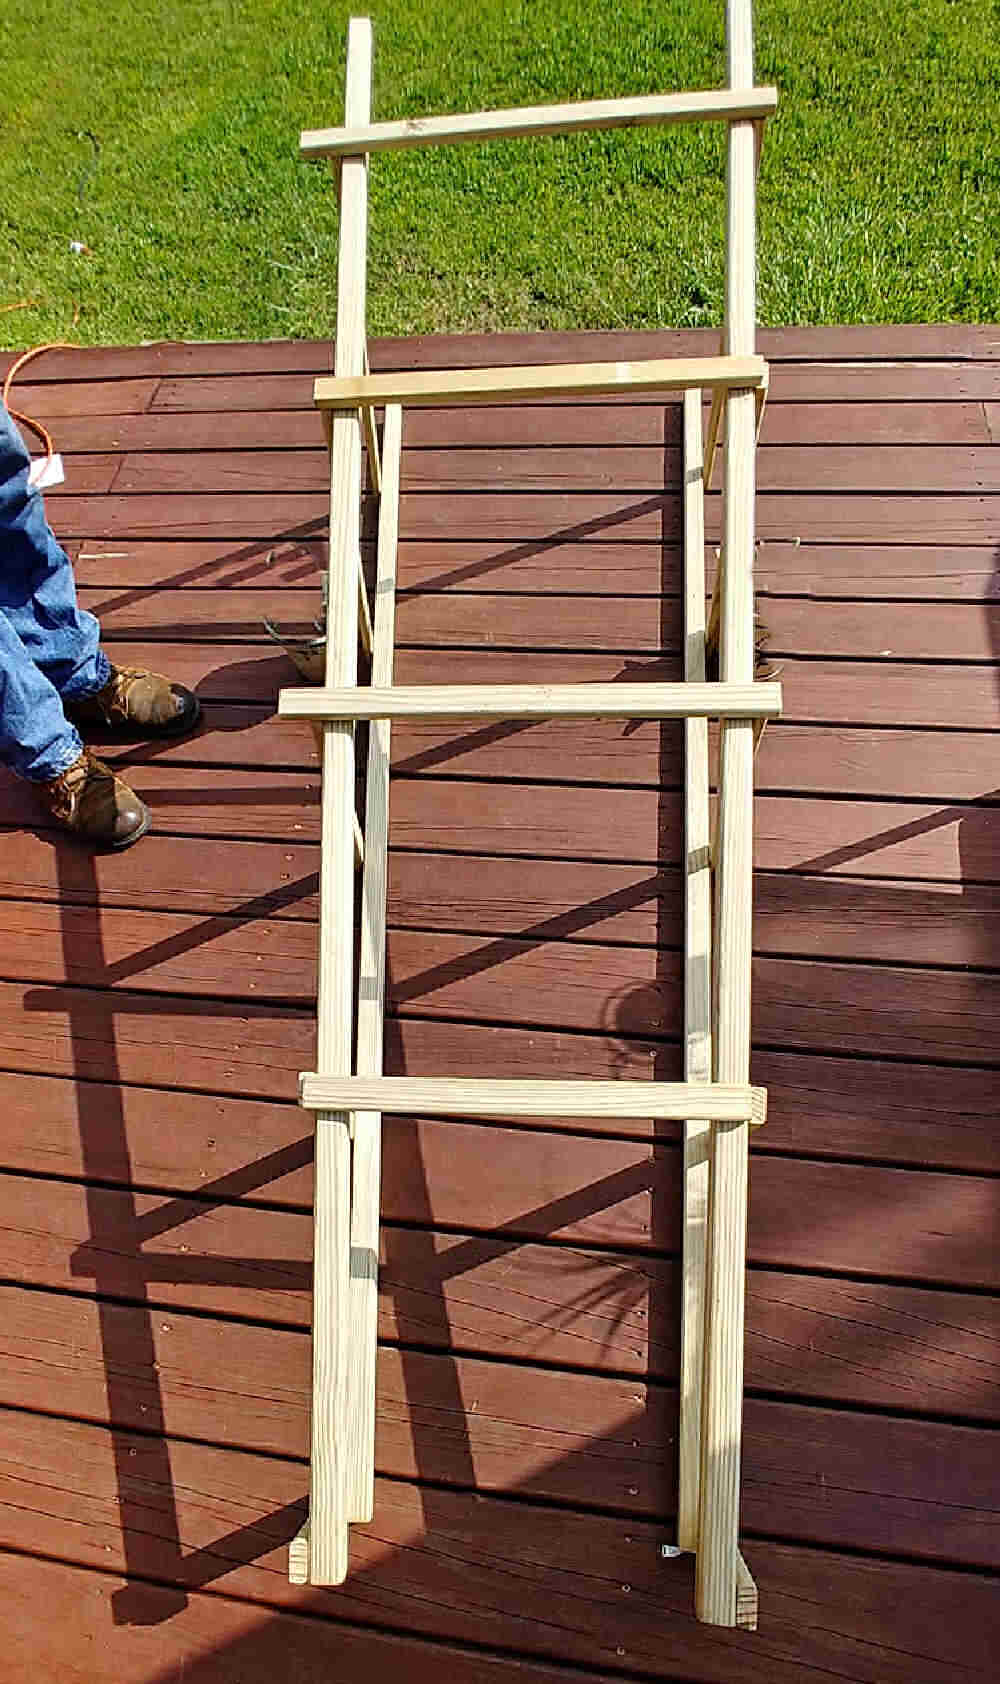 Joining pieces of wood over ladder supports.